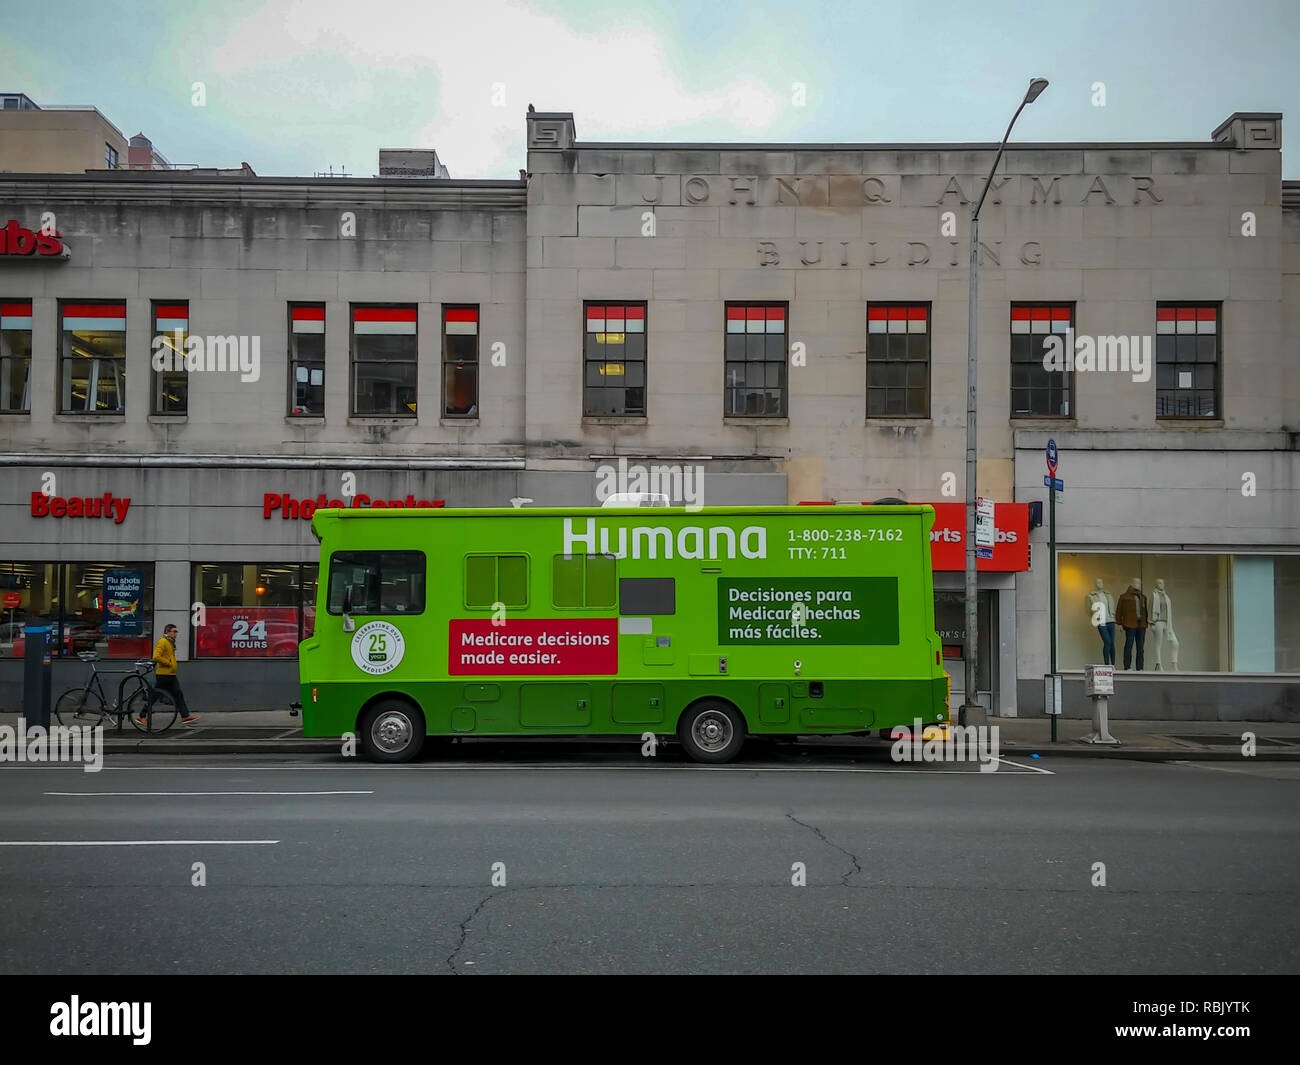 Humana Health Insurance >> An Outreach Van For The Humana Health Insurance Company